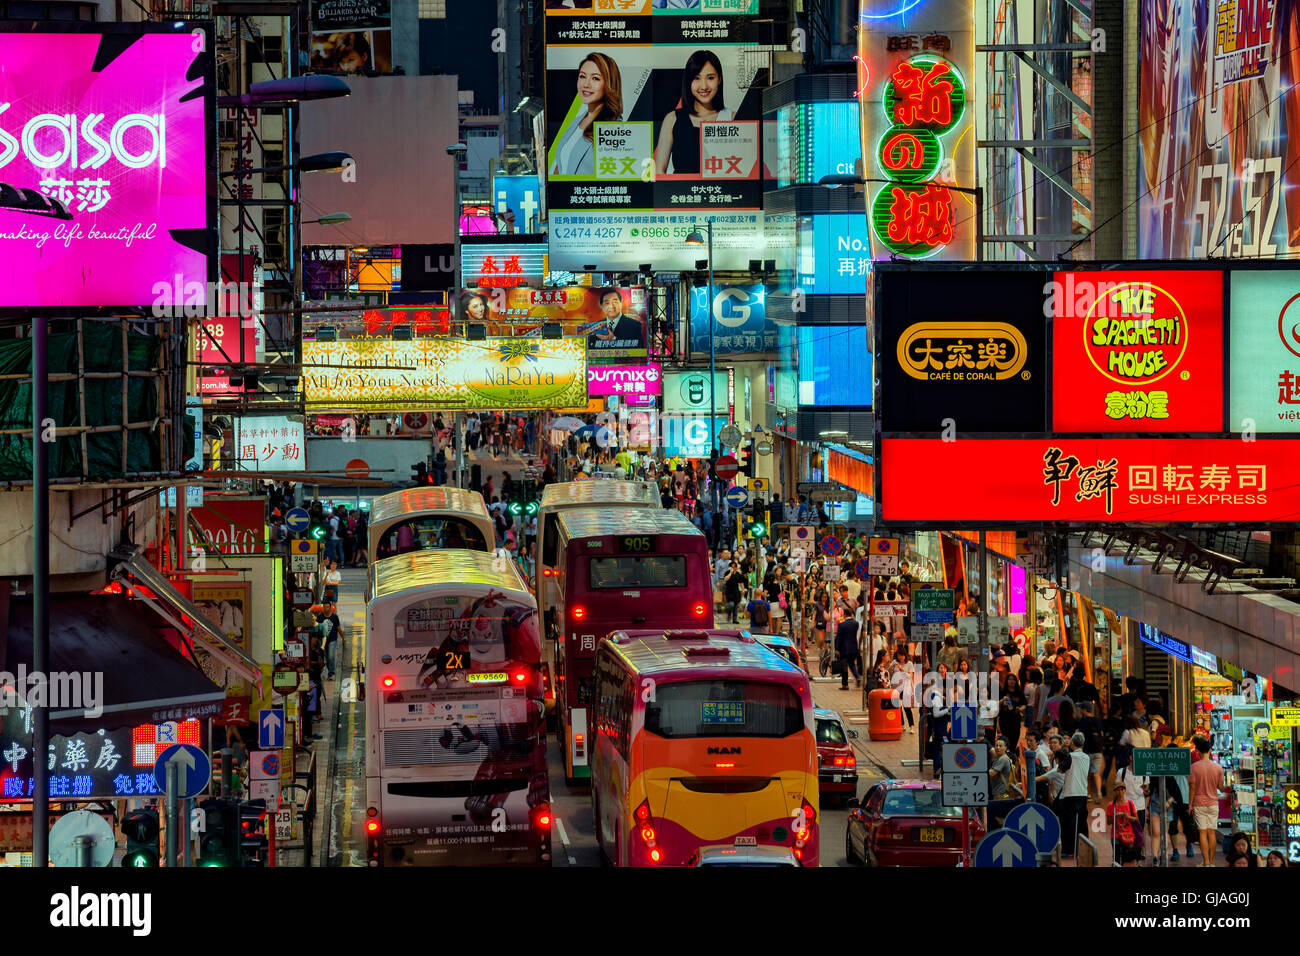 Neon signs and billboards along the crowded and busy city streets neon signs and billboards along the crowded and busy city streets hong kong china biocorpaavc